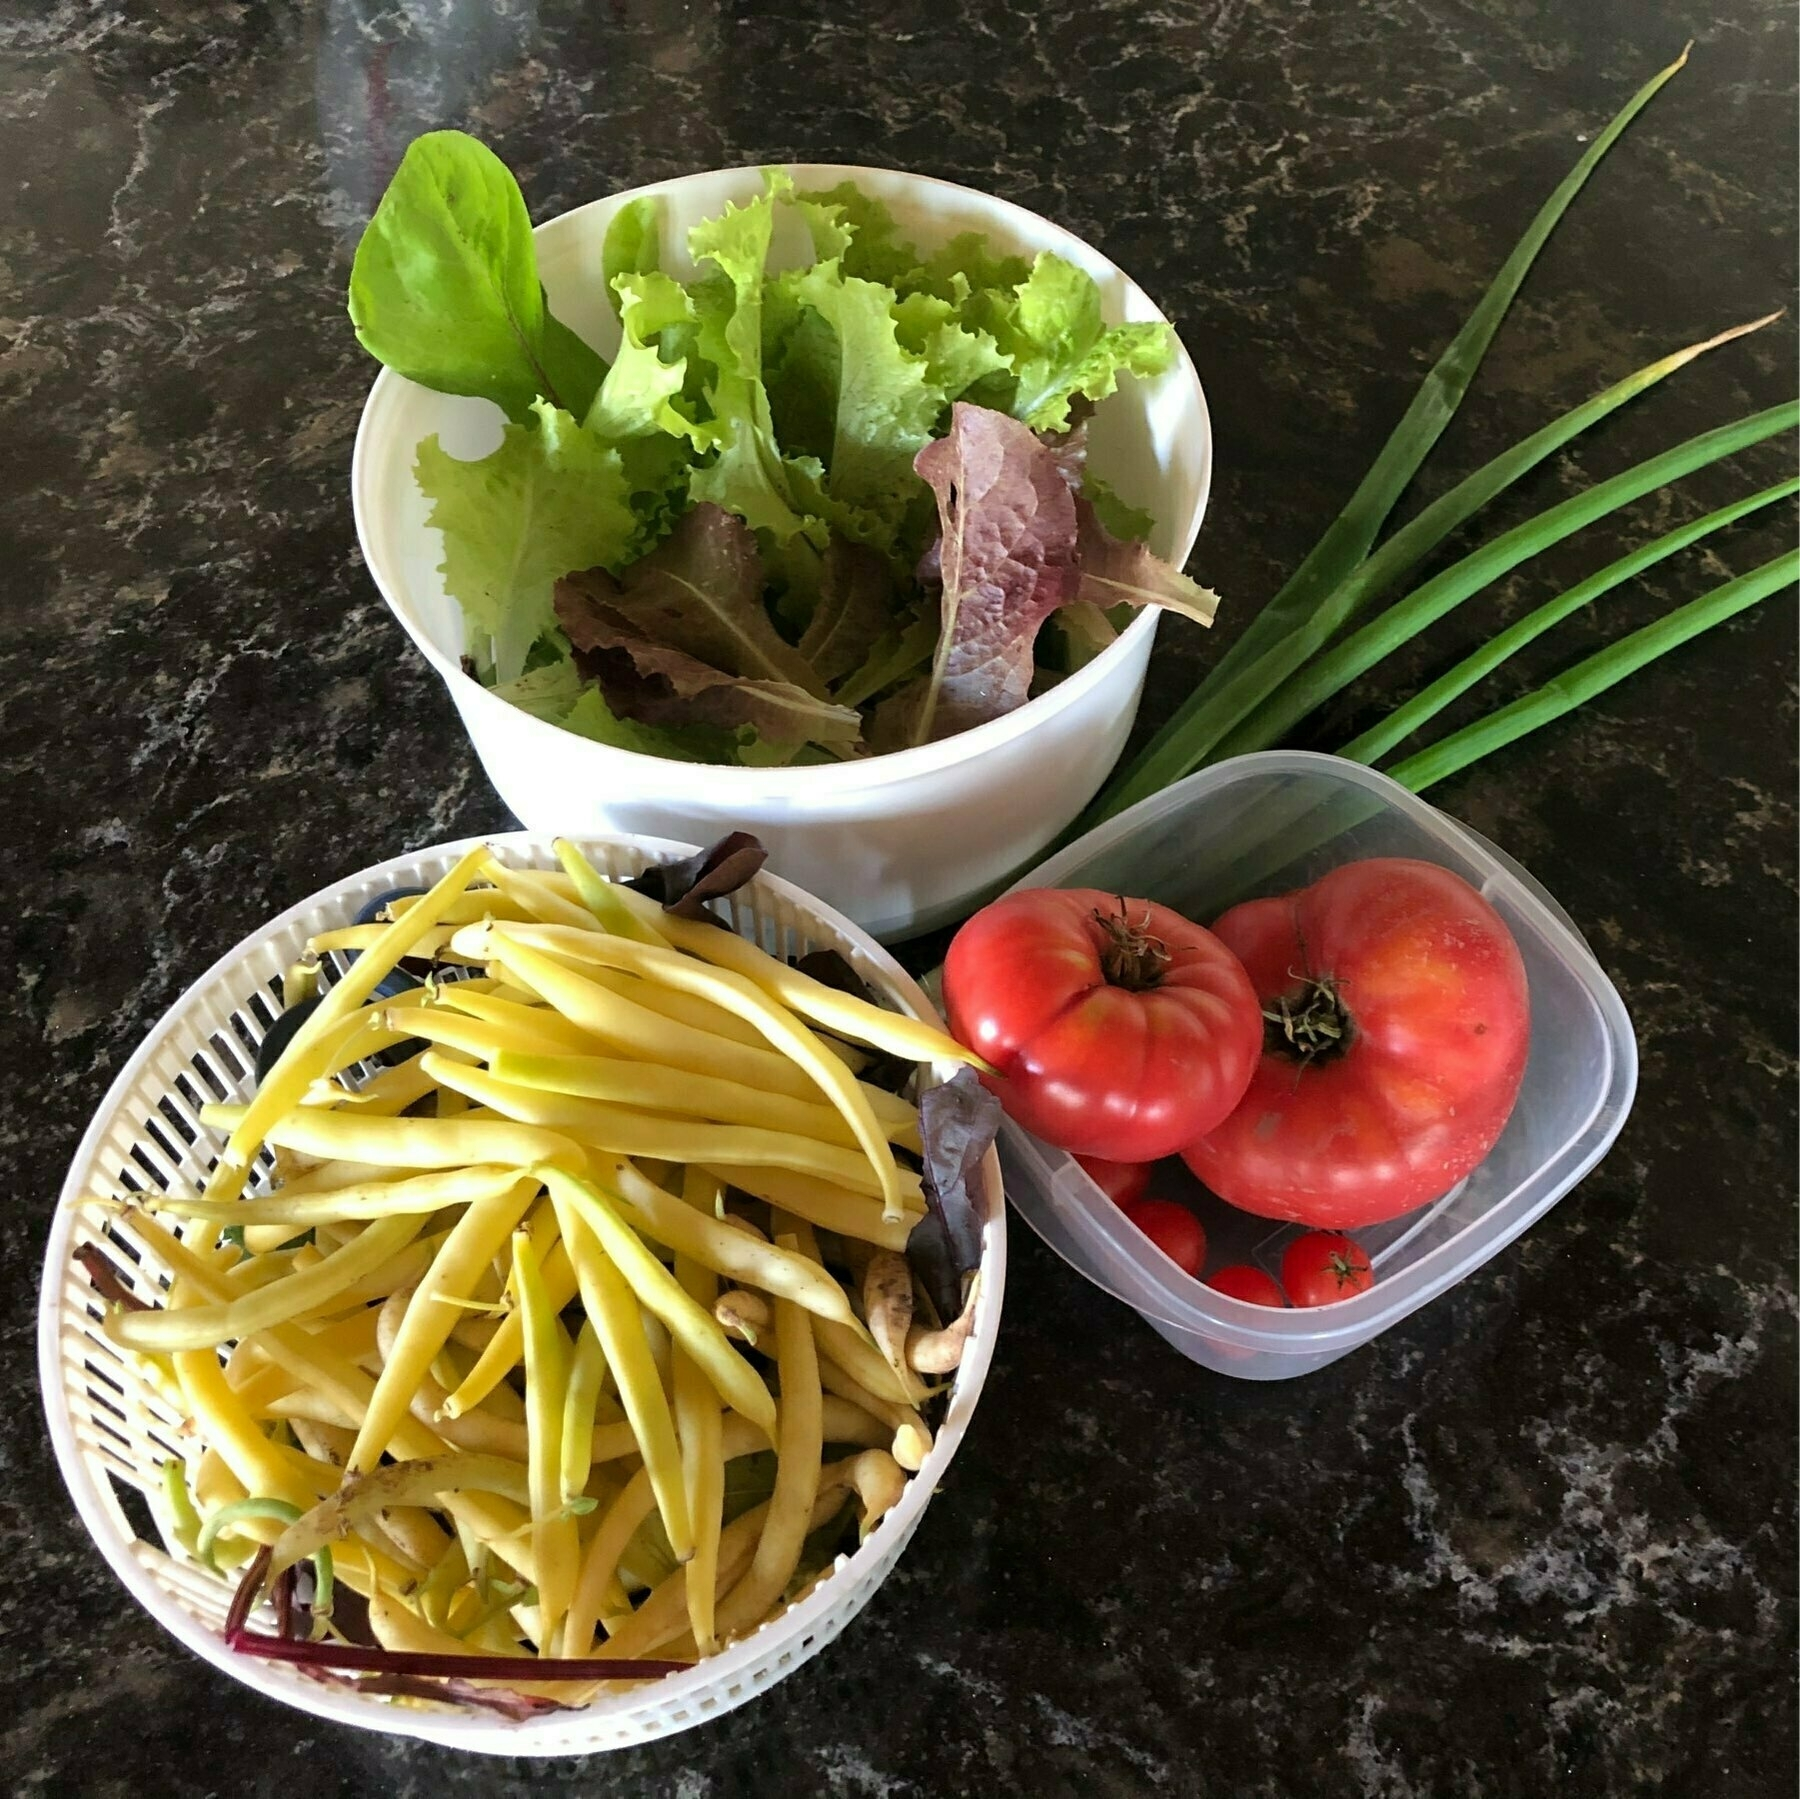 comtainers of yellow beans, tomatoes a d lettuce with green tops from walking onions sitting on a countertop